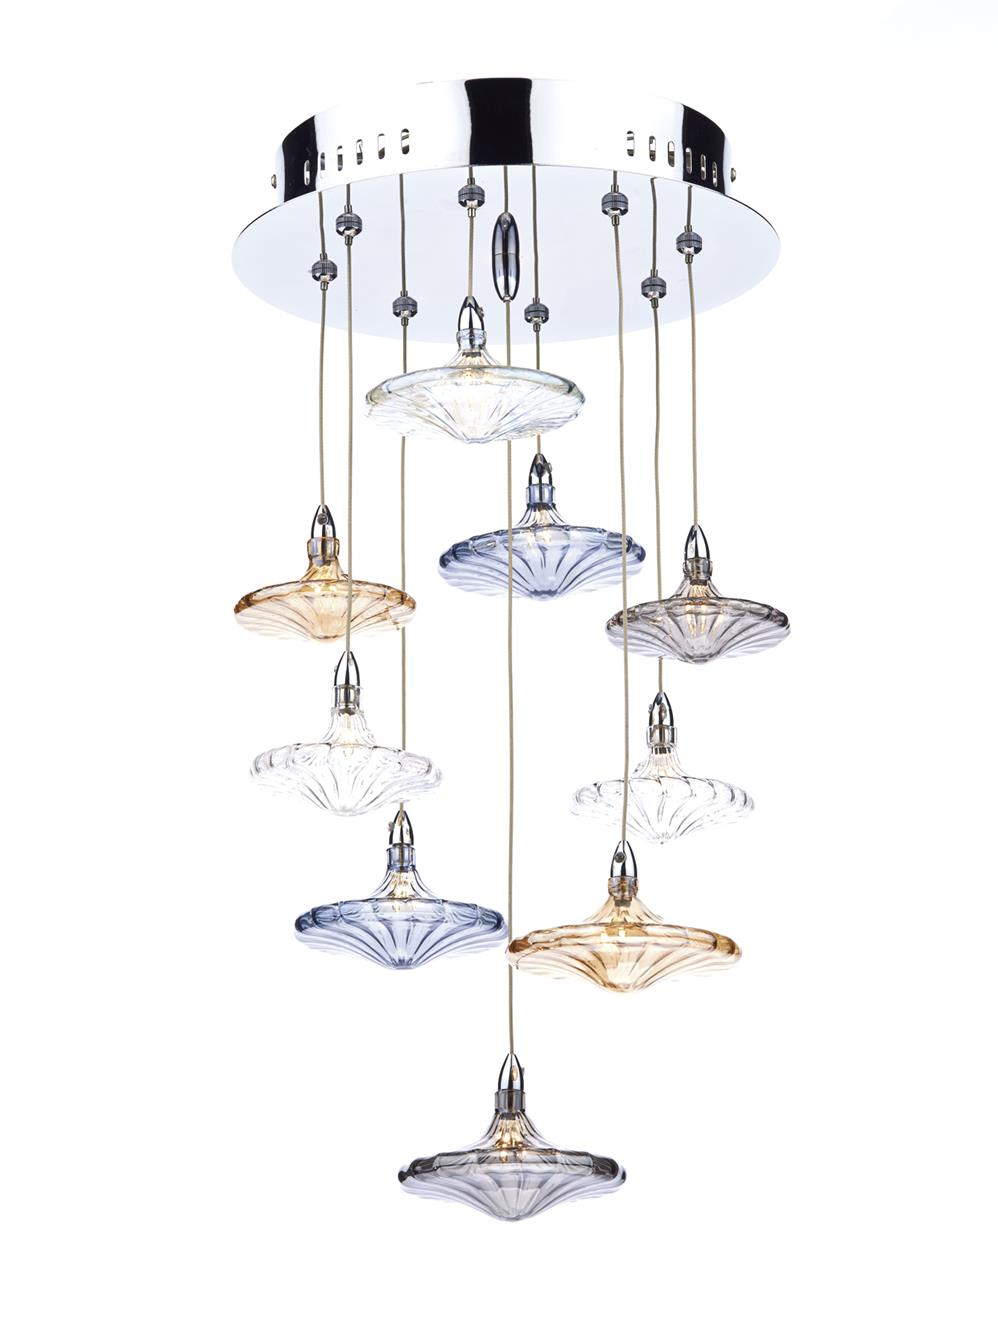 Dar JUL191 Juliette spare CLEAR glass shade for JUL1350